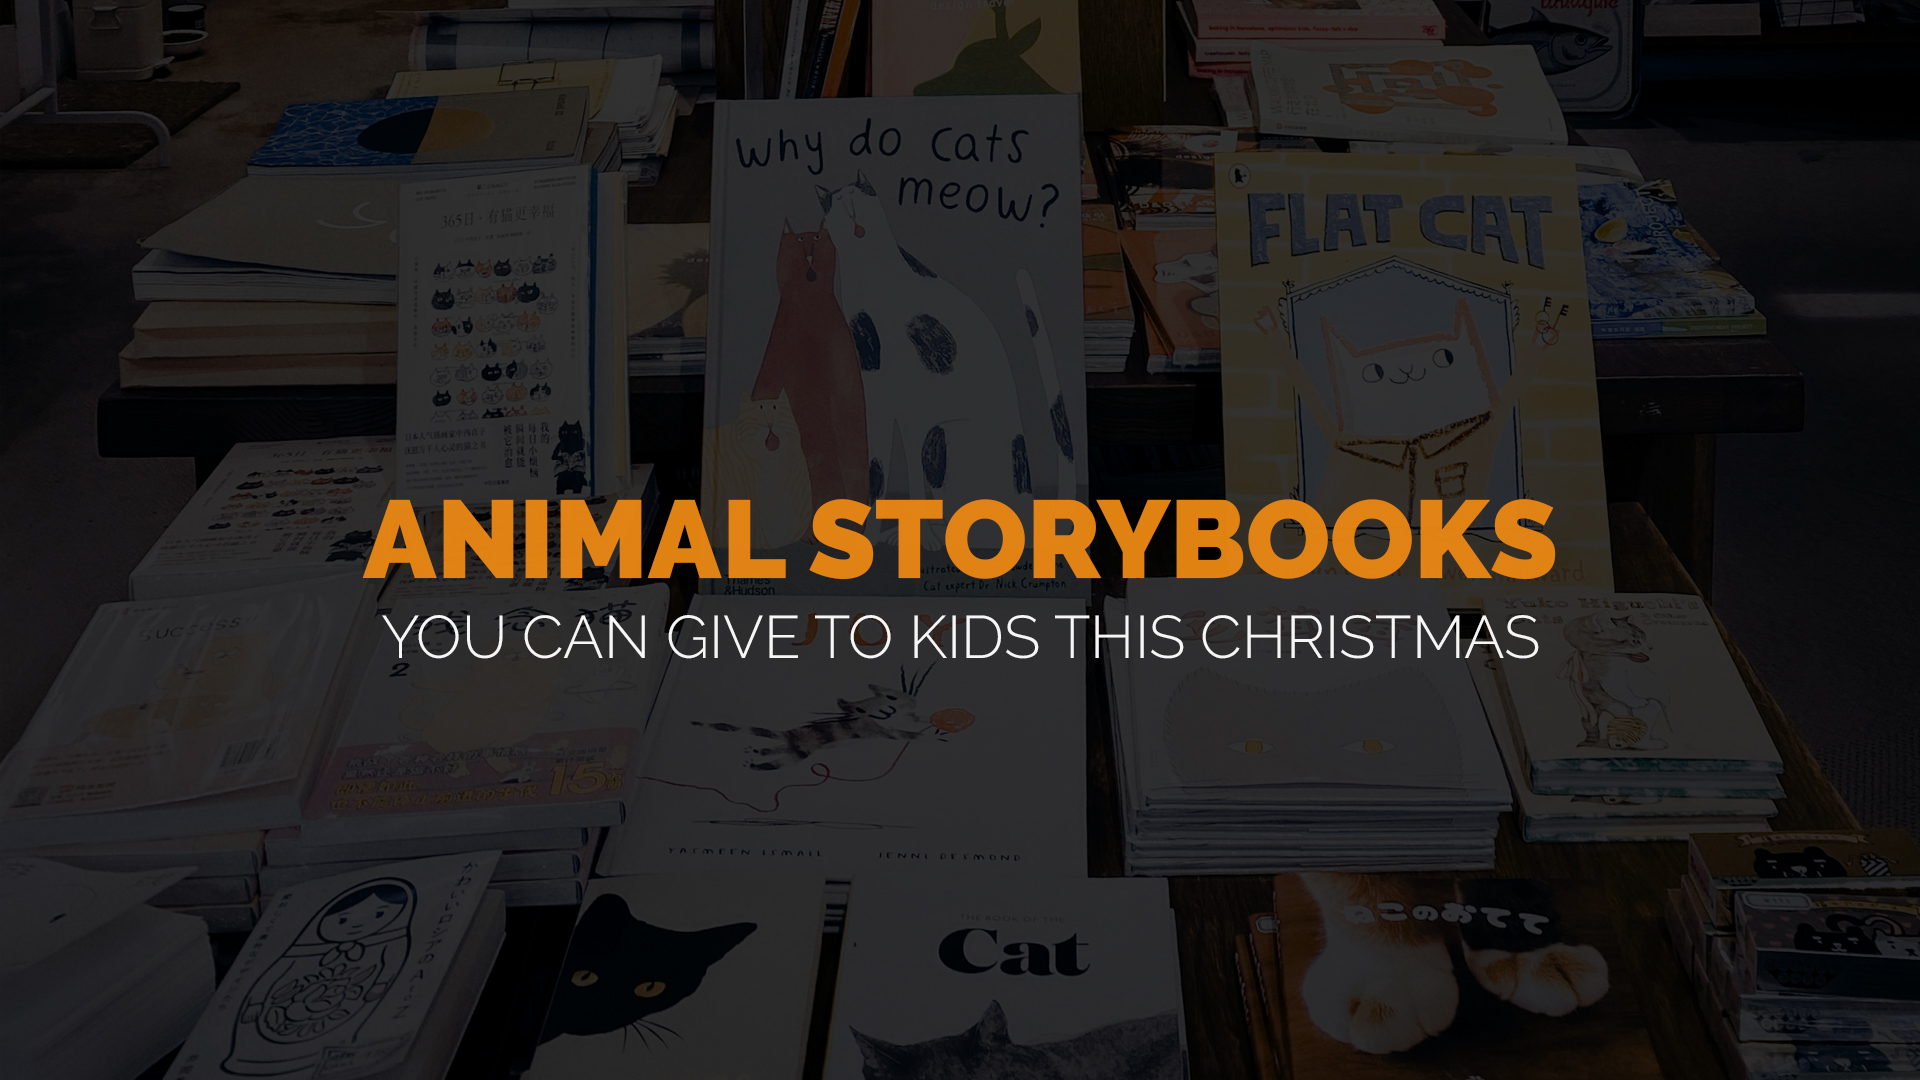 Animal Storybooks You Can Give to Kids This Christmas banner